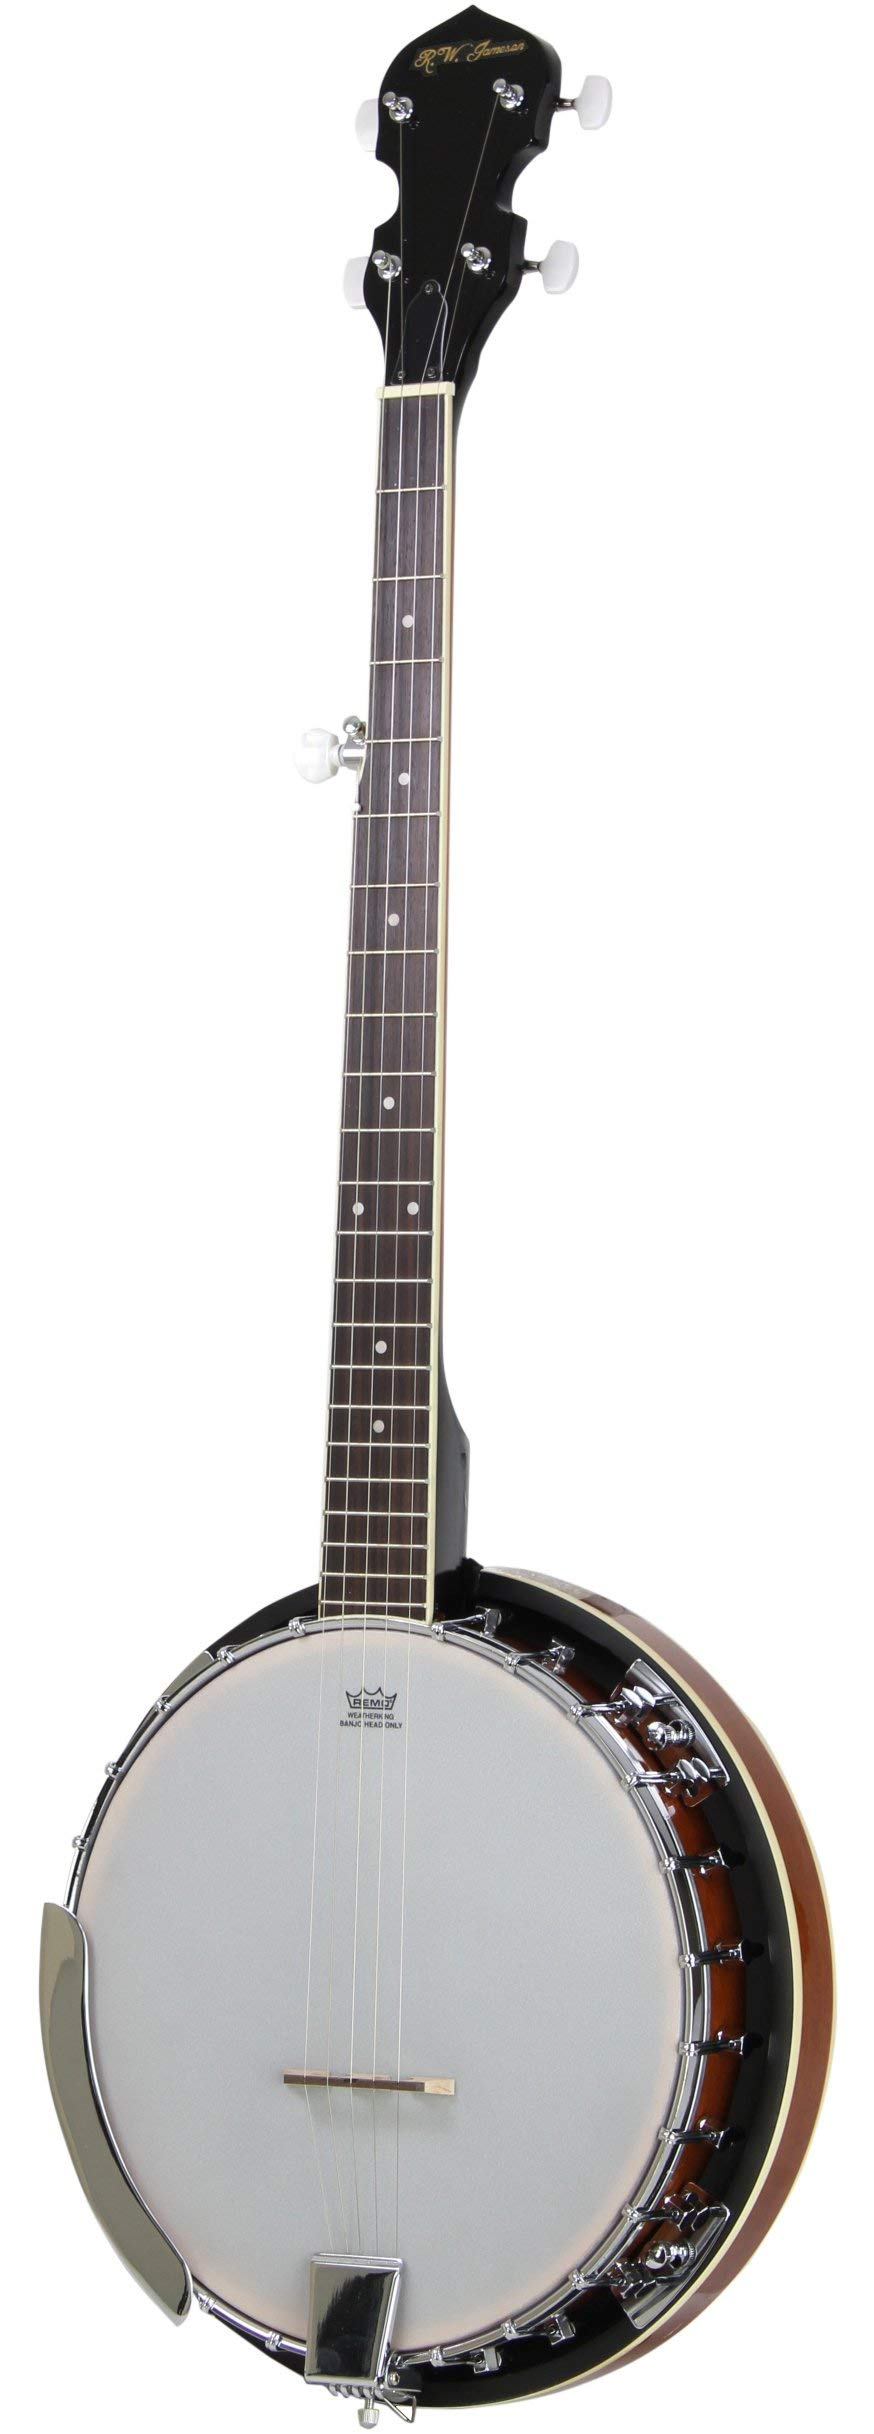 Jameson Guitars 5-String Banjo 24 Bracket with Closed Solid Back and Geared 5th Tuner (Renewed) by Jameson Guitars